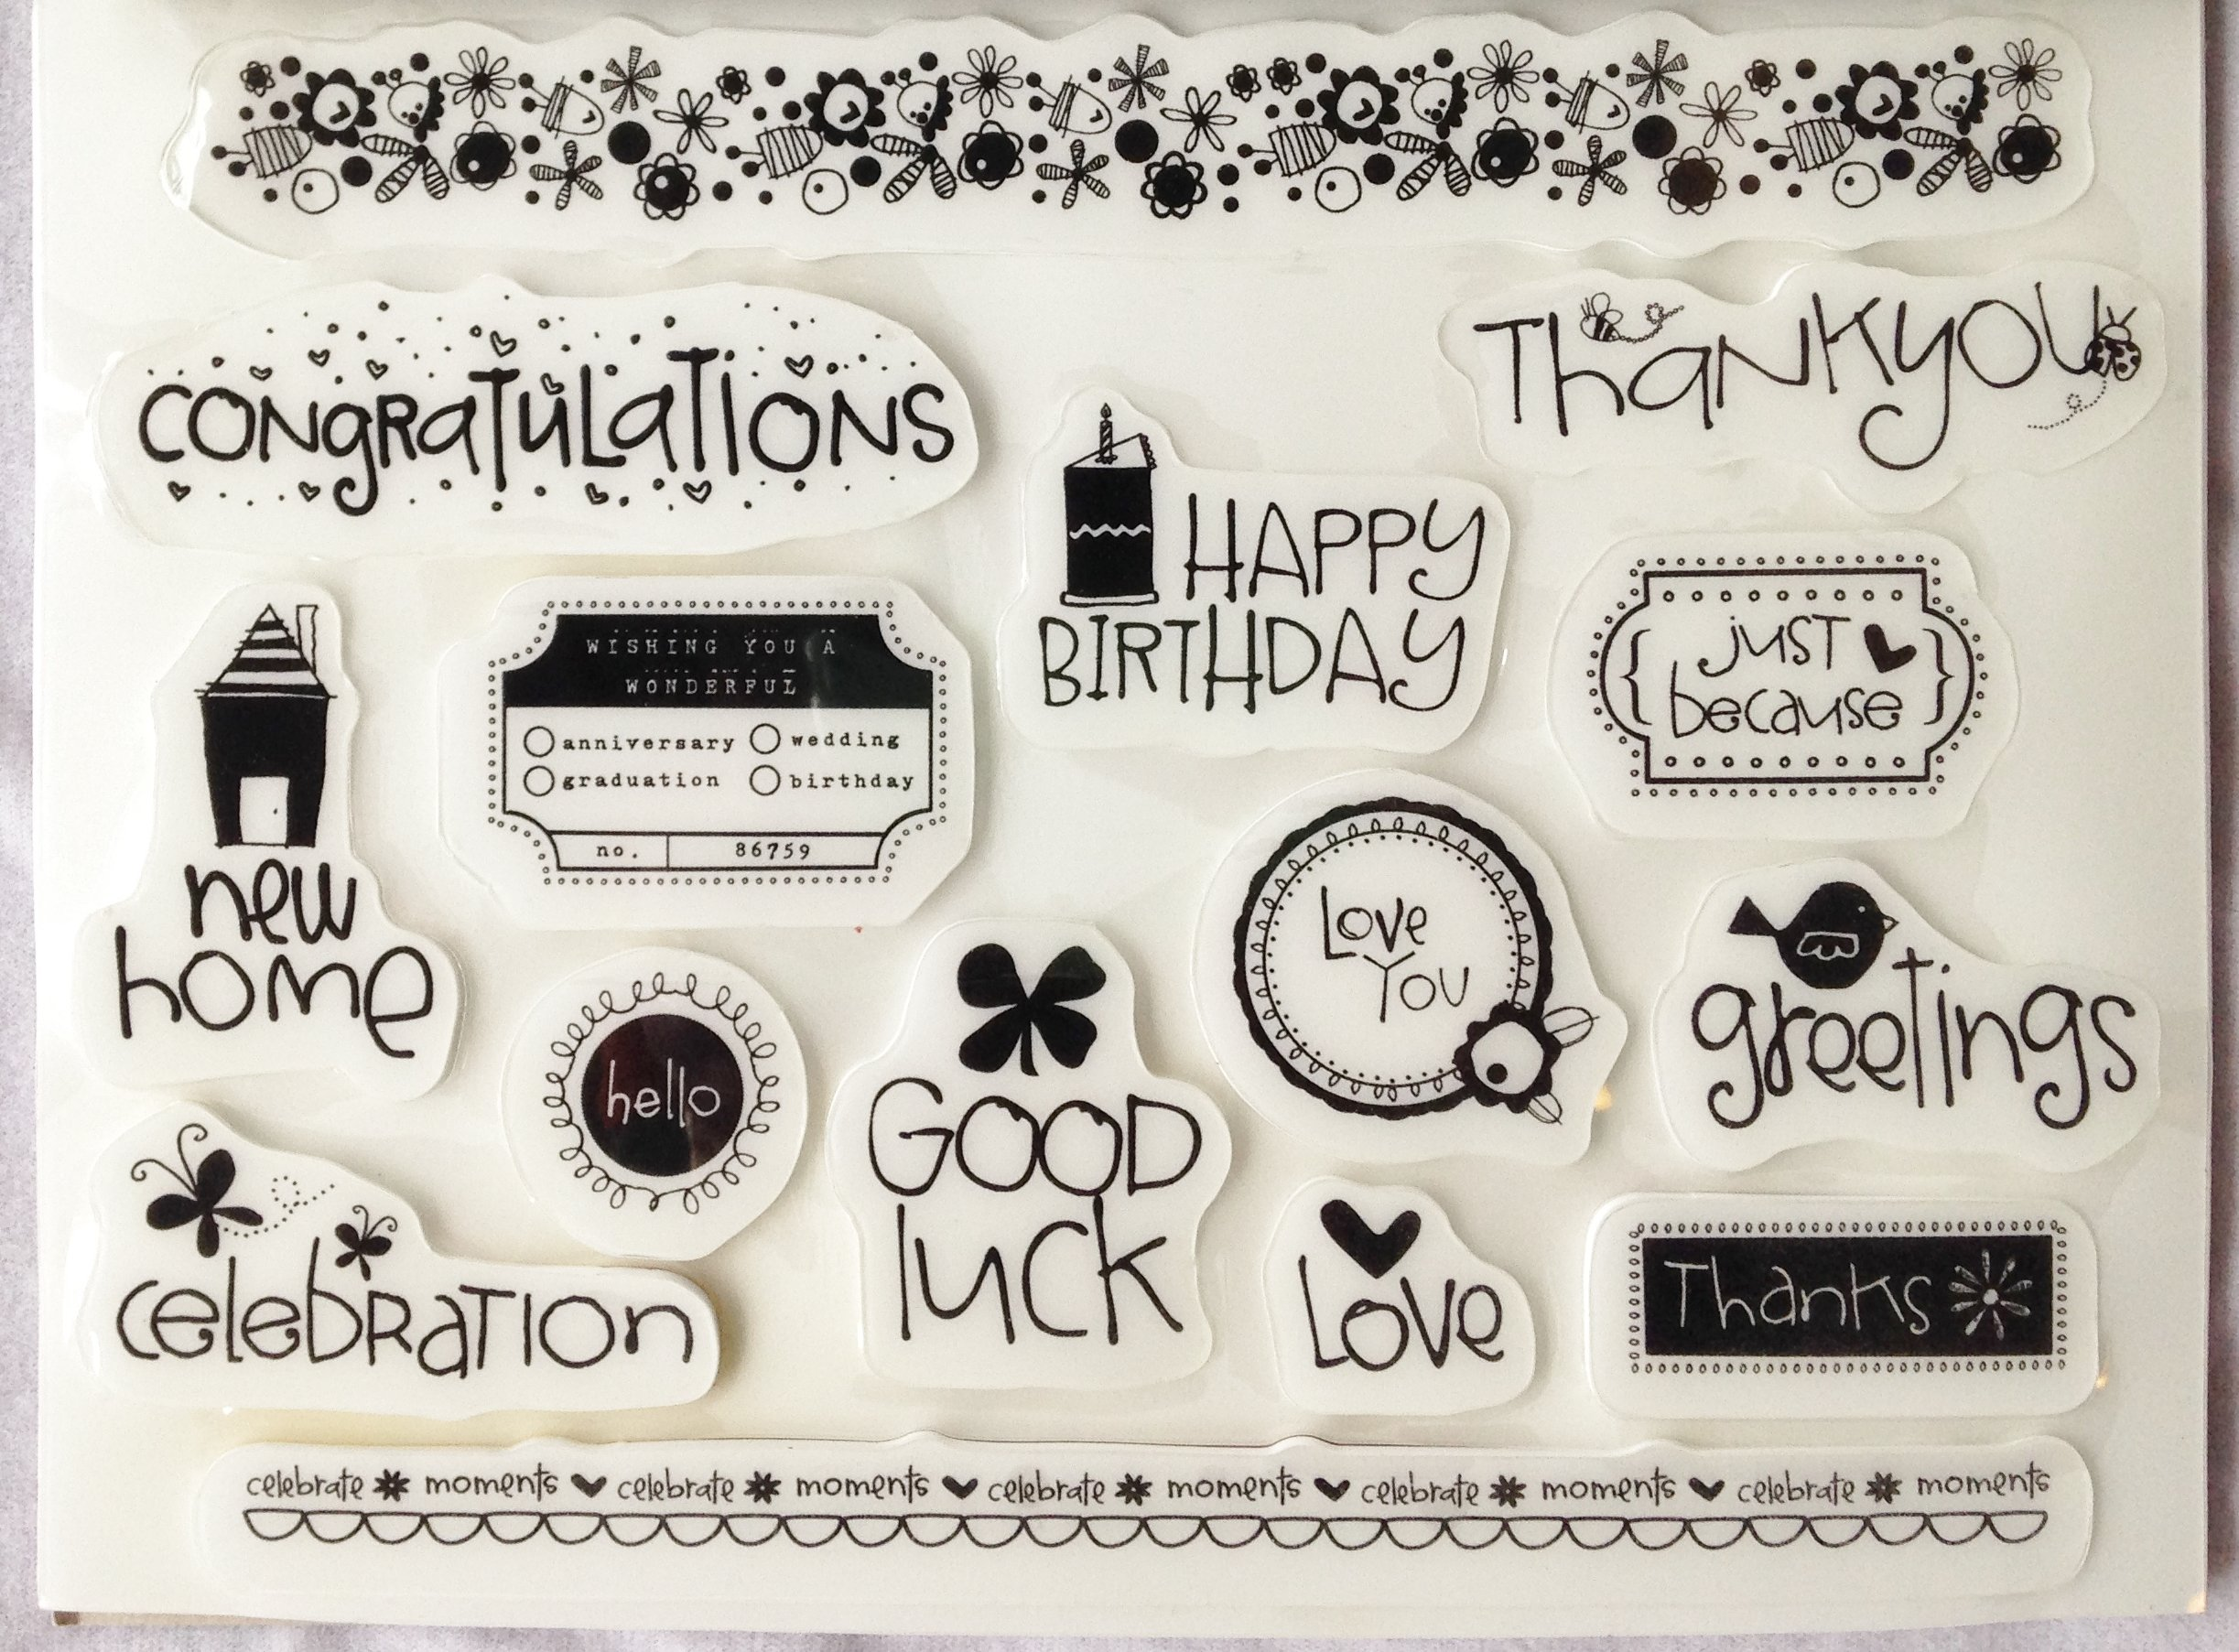 """Heidi Grace RUBBER CLING STAMPS """"Thank You"""" """"Happy Birthday"""" """"Good Luck!"""" Etc. For SCRAPBOOKING, ARTS & CRAFT PROJECTS (15 Count)"""